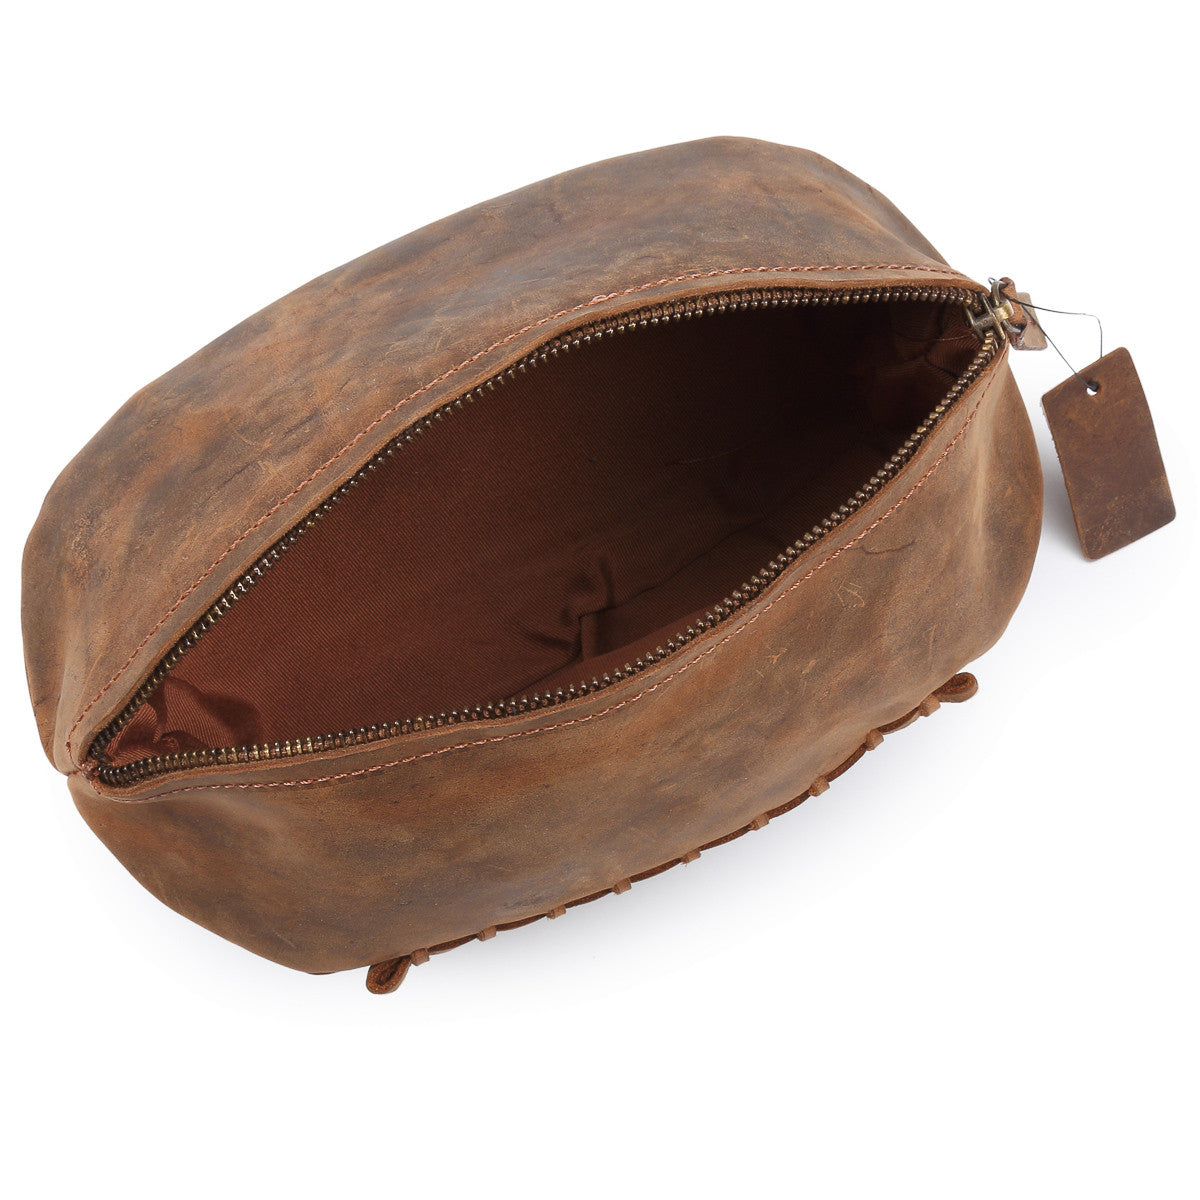 02801e160fec Hydestyle Venator Distressed Leather Rugby Ball Wash Bag  TW13